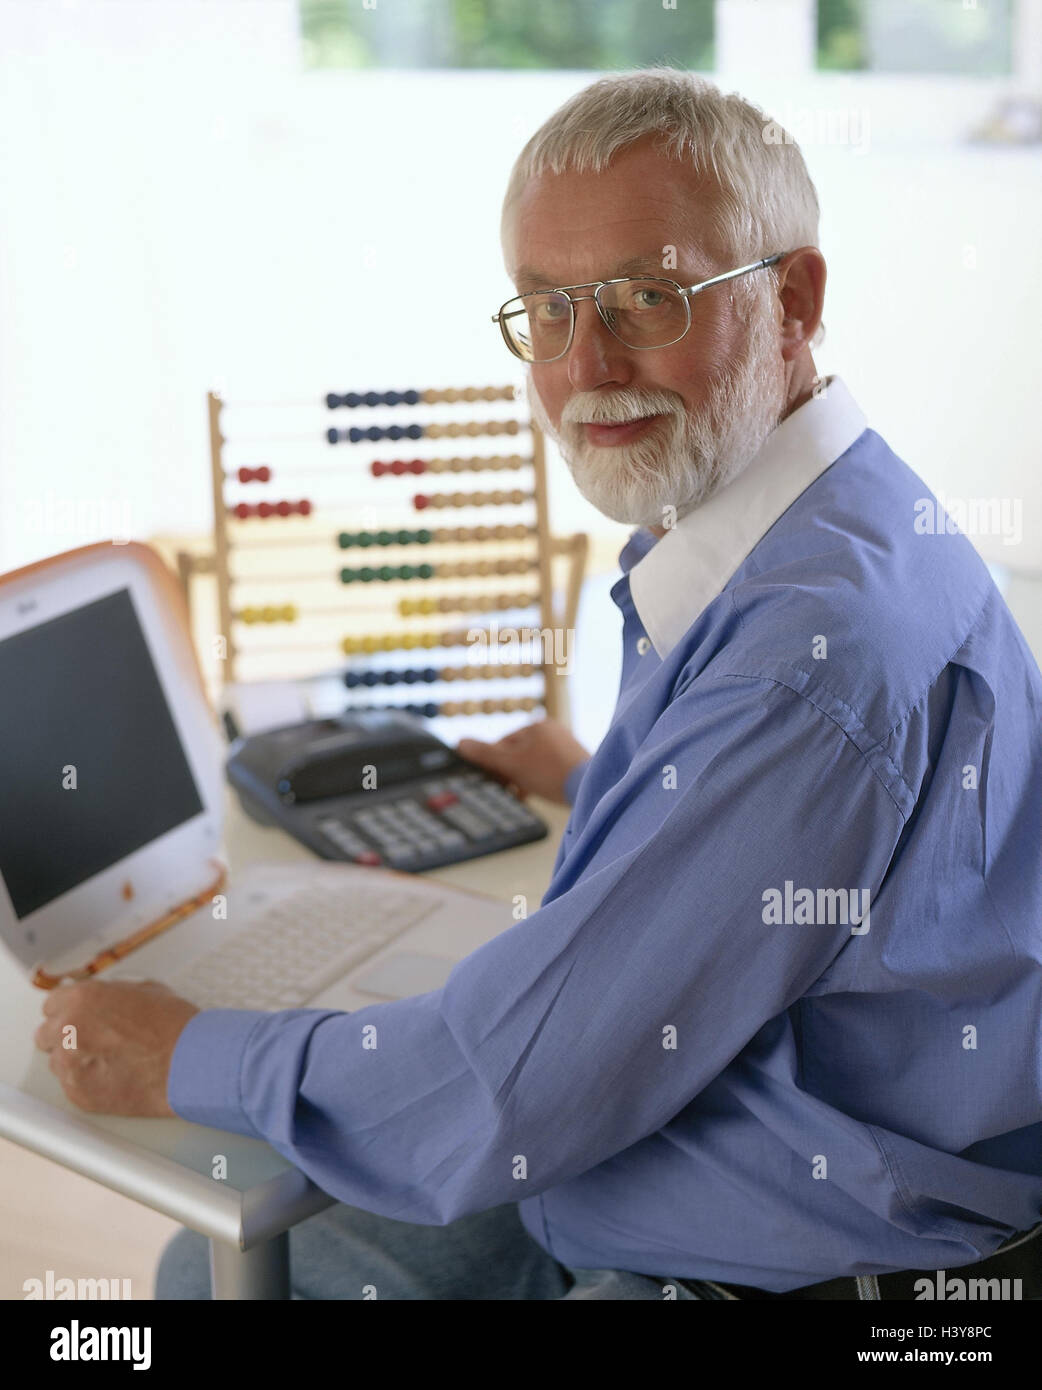 Senior, glasses, iBook, calculating machine, abacus, icon, development, progress, interest man, continuing education, - Stock Image